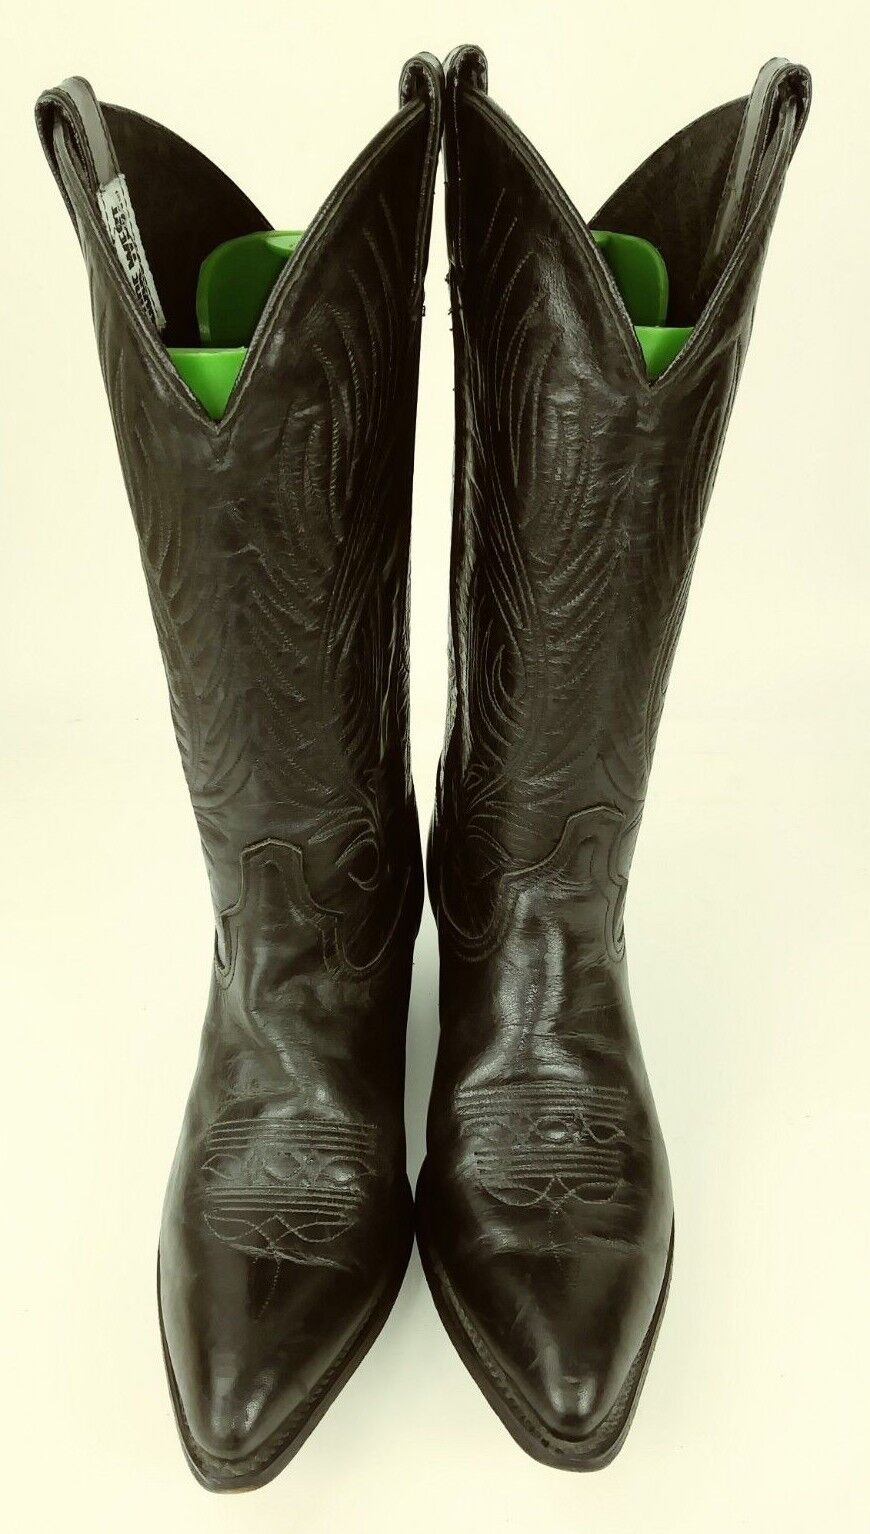 Code West 460 Womens Boots Boots Boots US 6.5 M Black Leather Cowboy Rockabilly USA 575 e1ec46